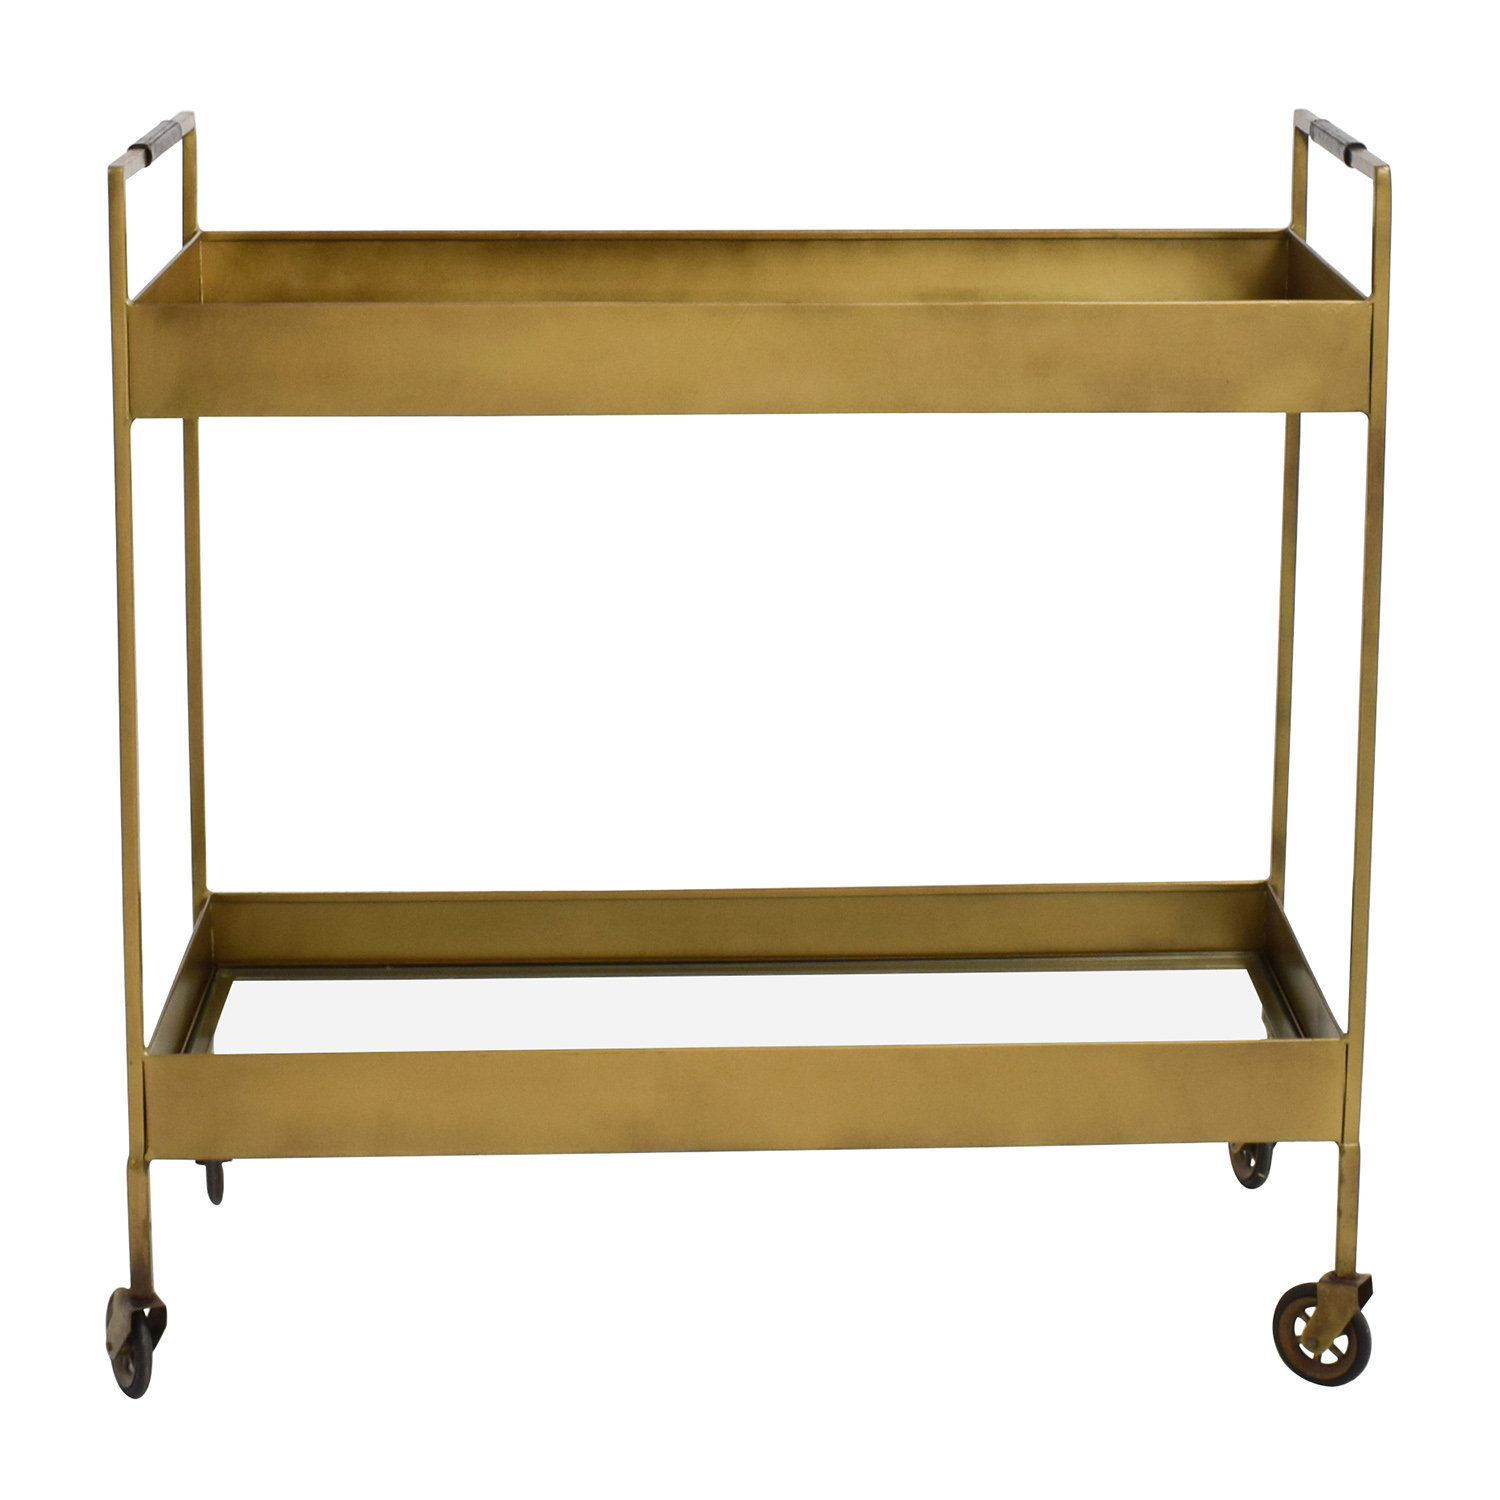 Crate and Barrel Crate & Barrel Libations Bar Cart Tables